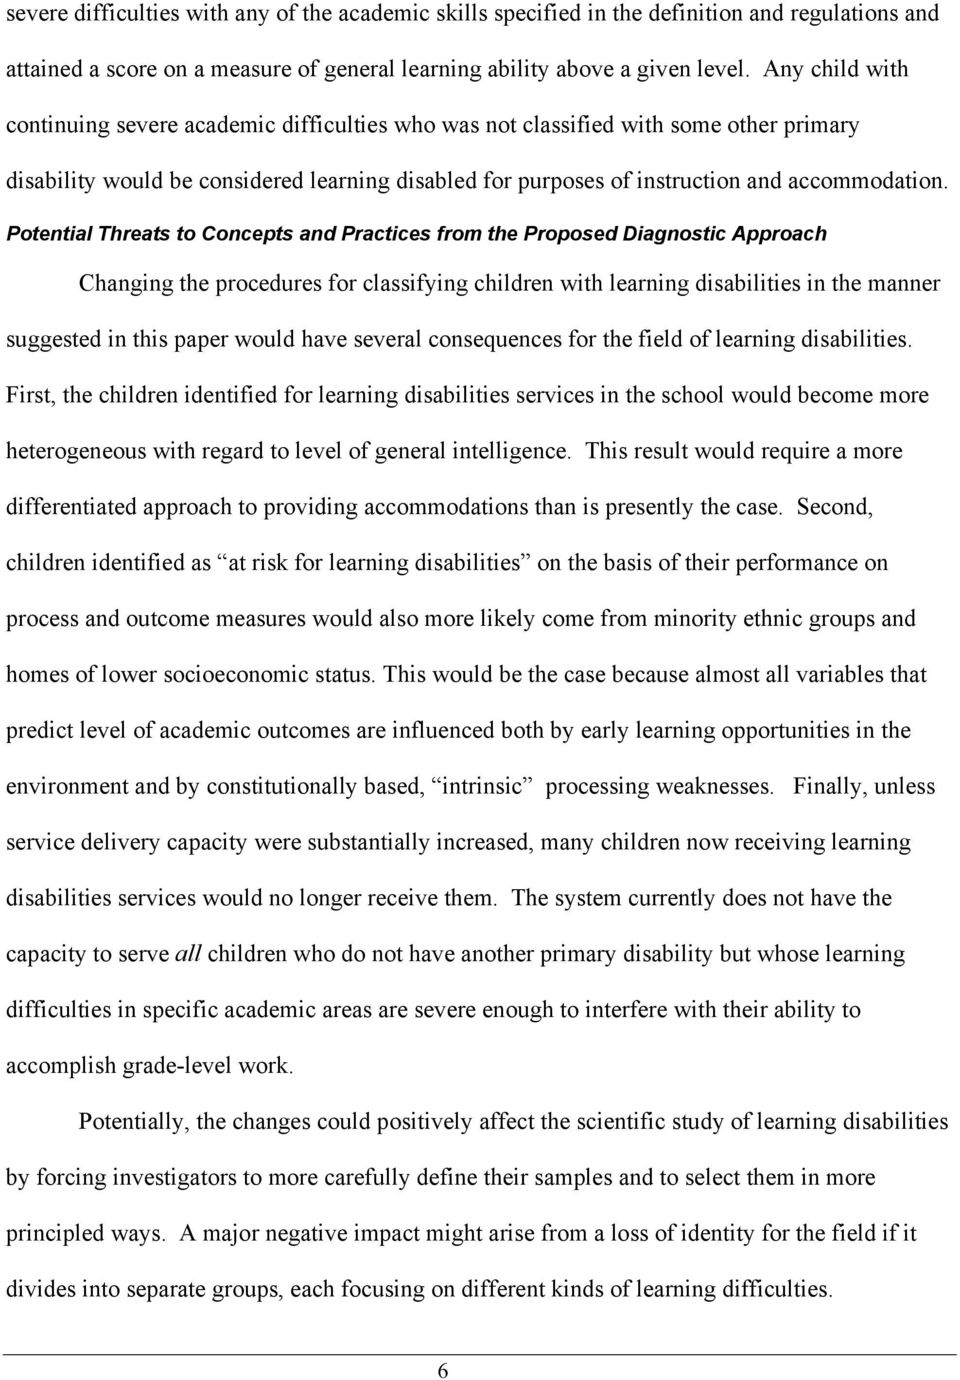 Potential Threats to Concepts and Practices from the Proposed Diagnostic Approach Changing the procedures for classifying children with learning disabilities in the manner suggested in this paper